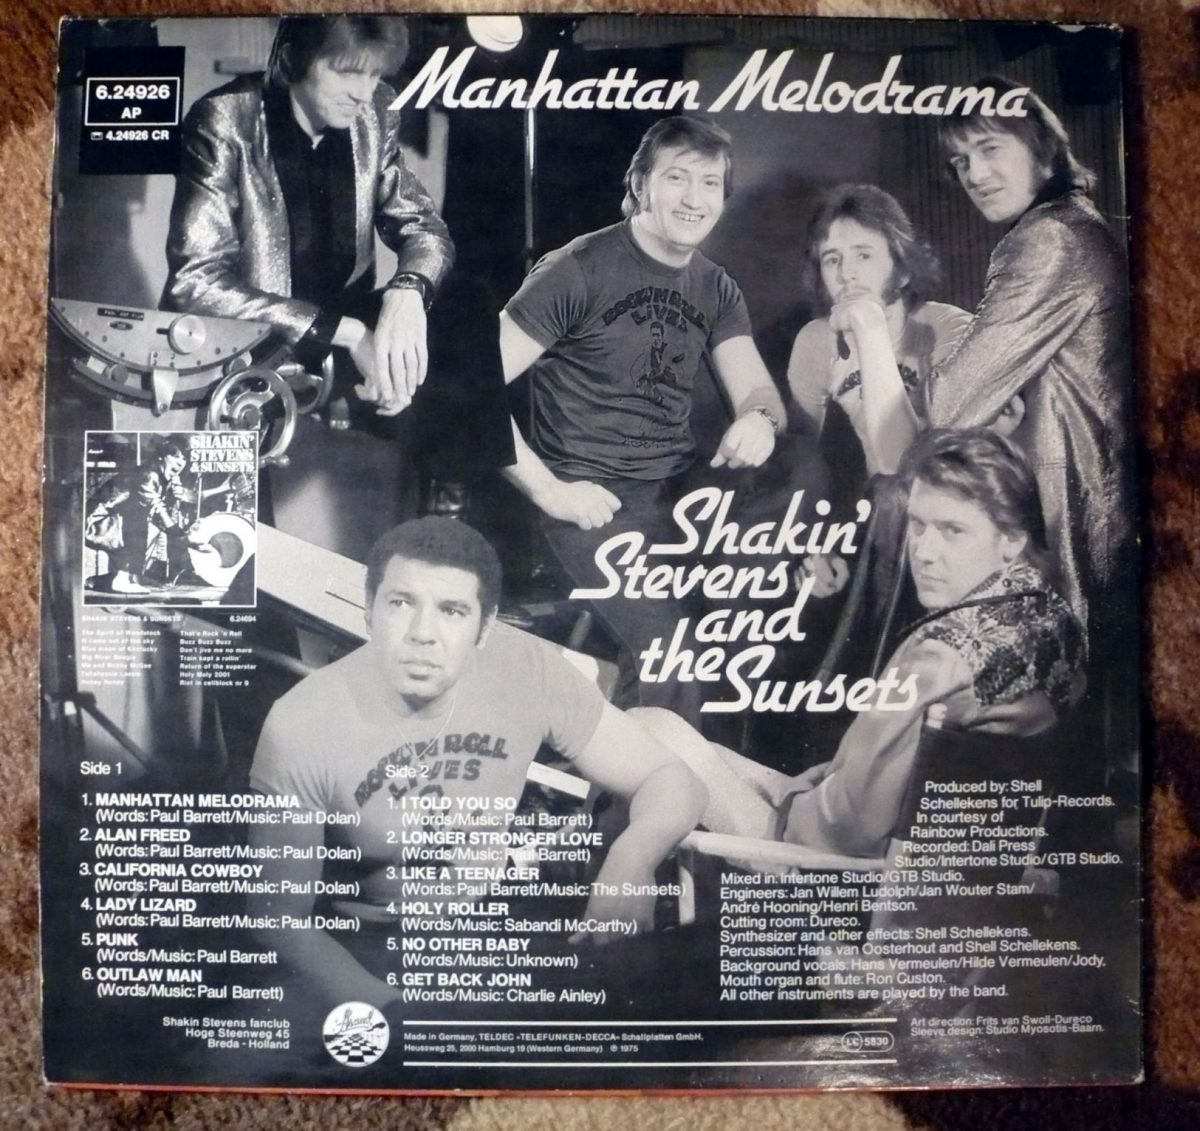 A group image of Shaky and The Sunsets from the same 1973 session appeared on the back cover of their second album Manhattan Melodrama, released a couple of years later.